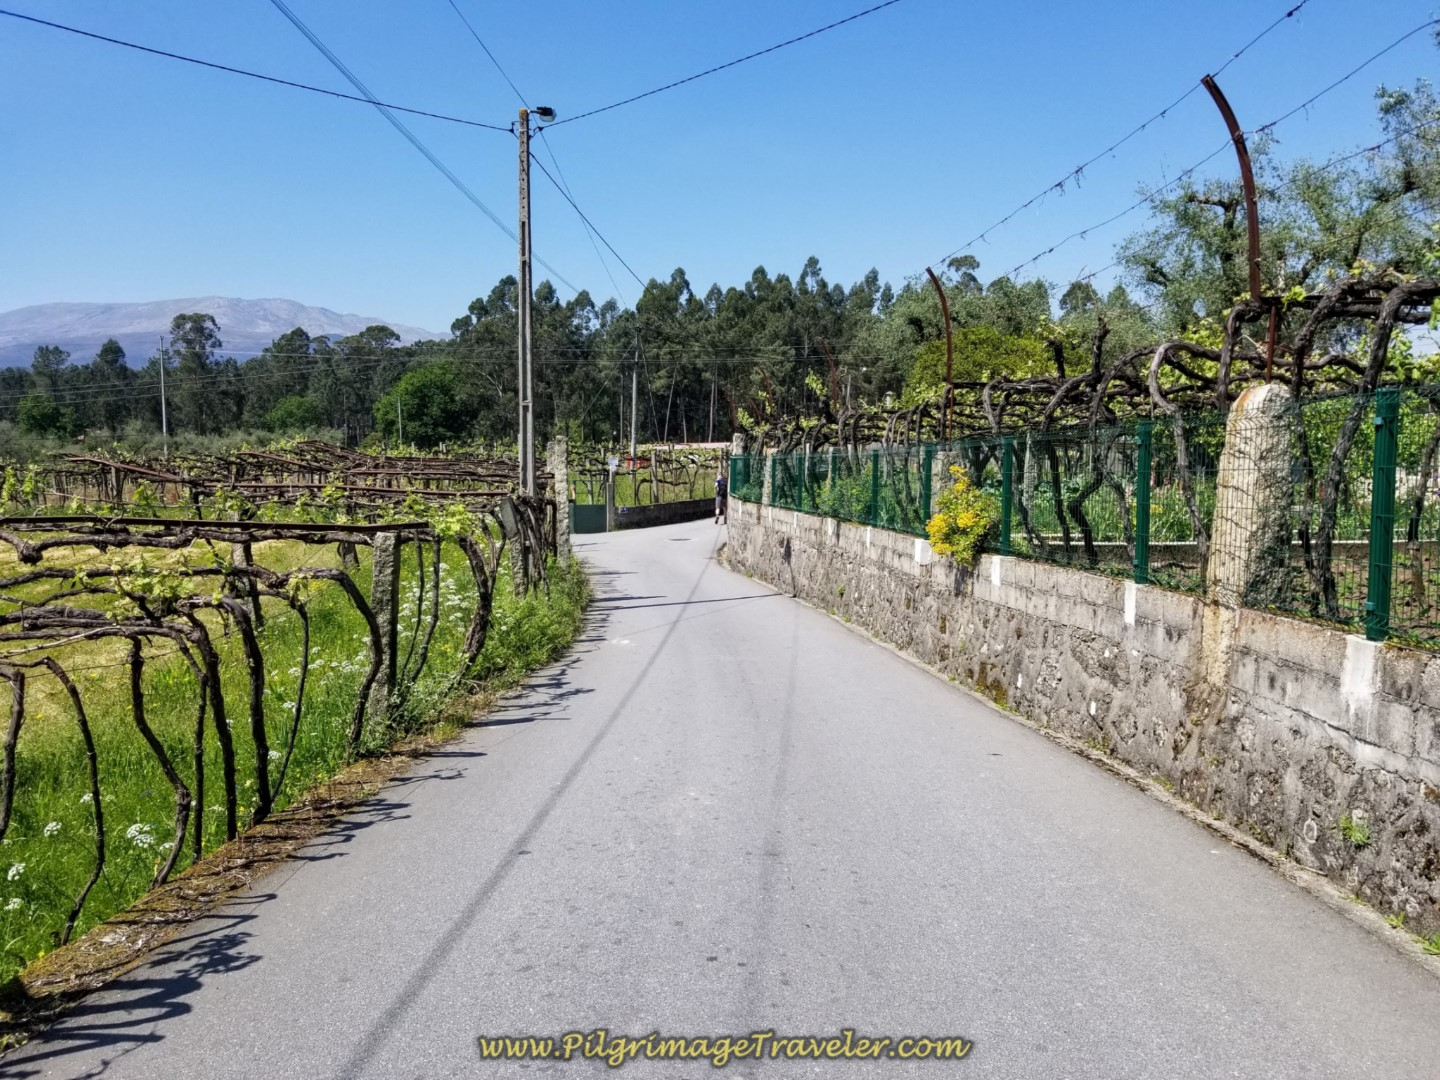 Vineyards Line the Rua do Caminho do Santiago in Seara on day seventeen on the Central Route of the Portuguese Camino